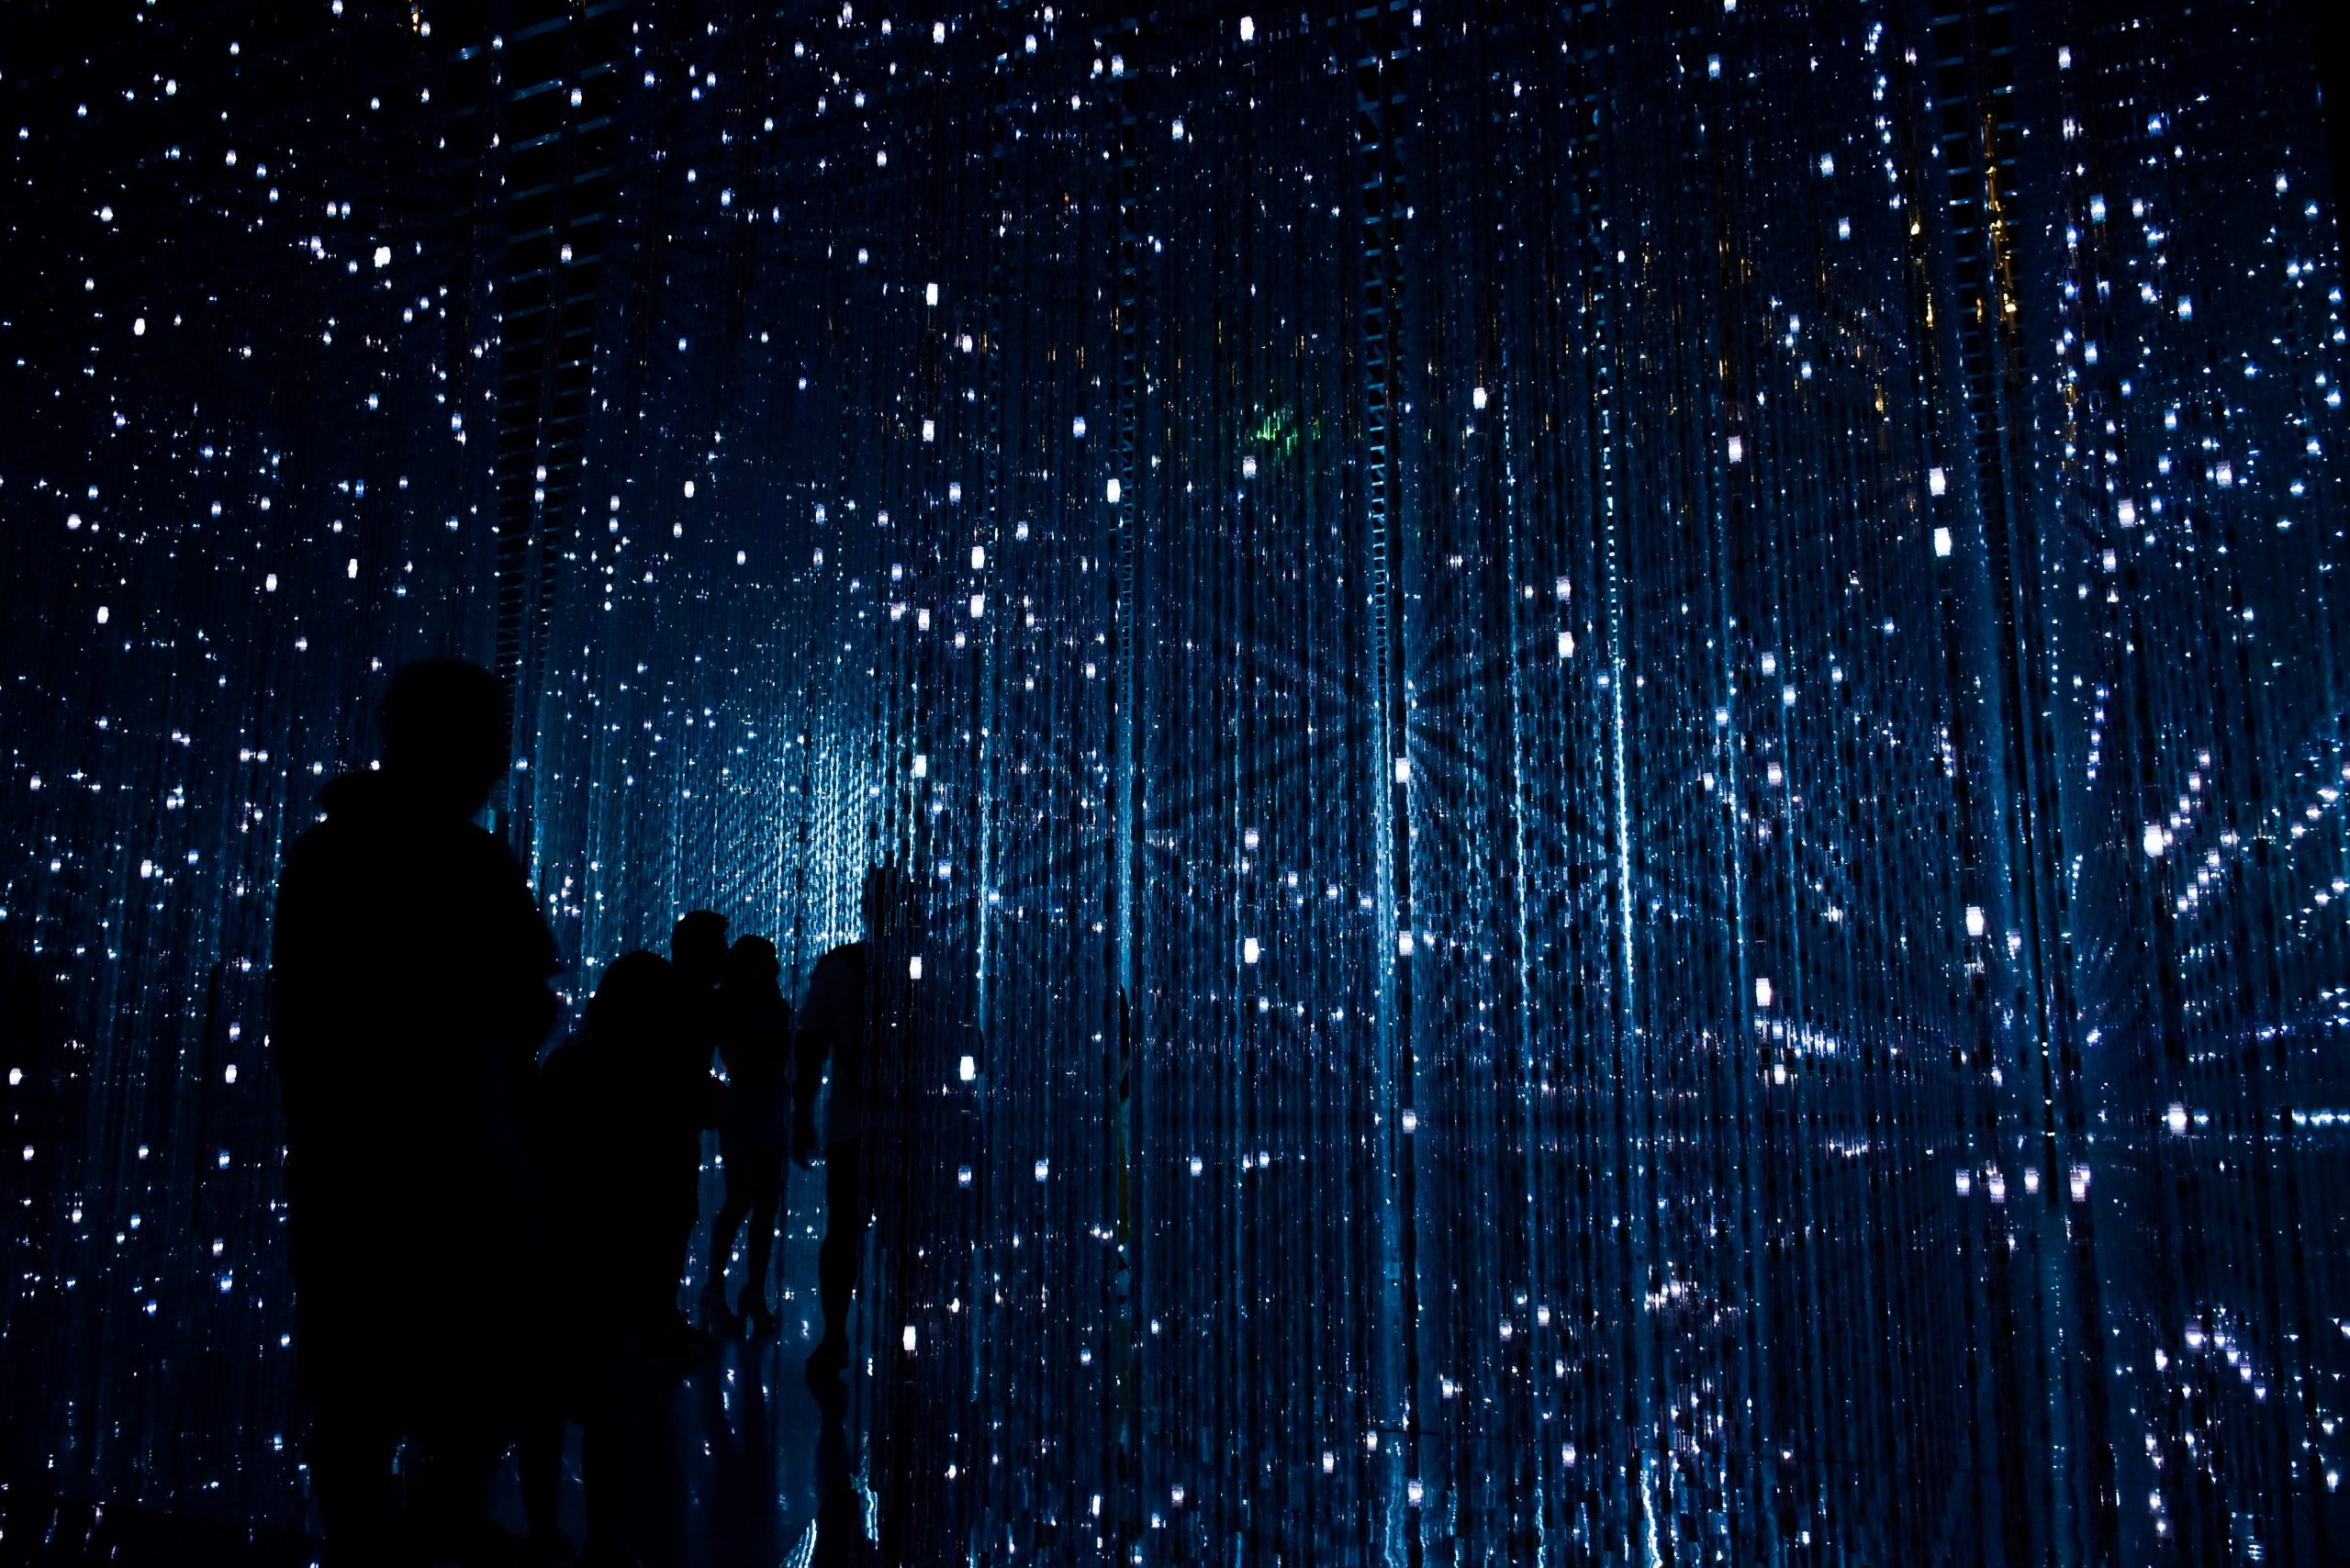 Futuristic Image of Silhouetted People In Dark Room With Blue Lines and White Sparks Of Light